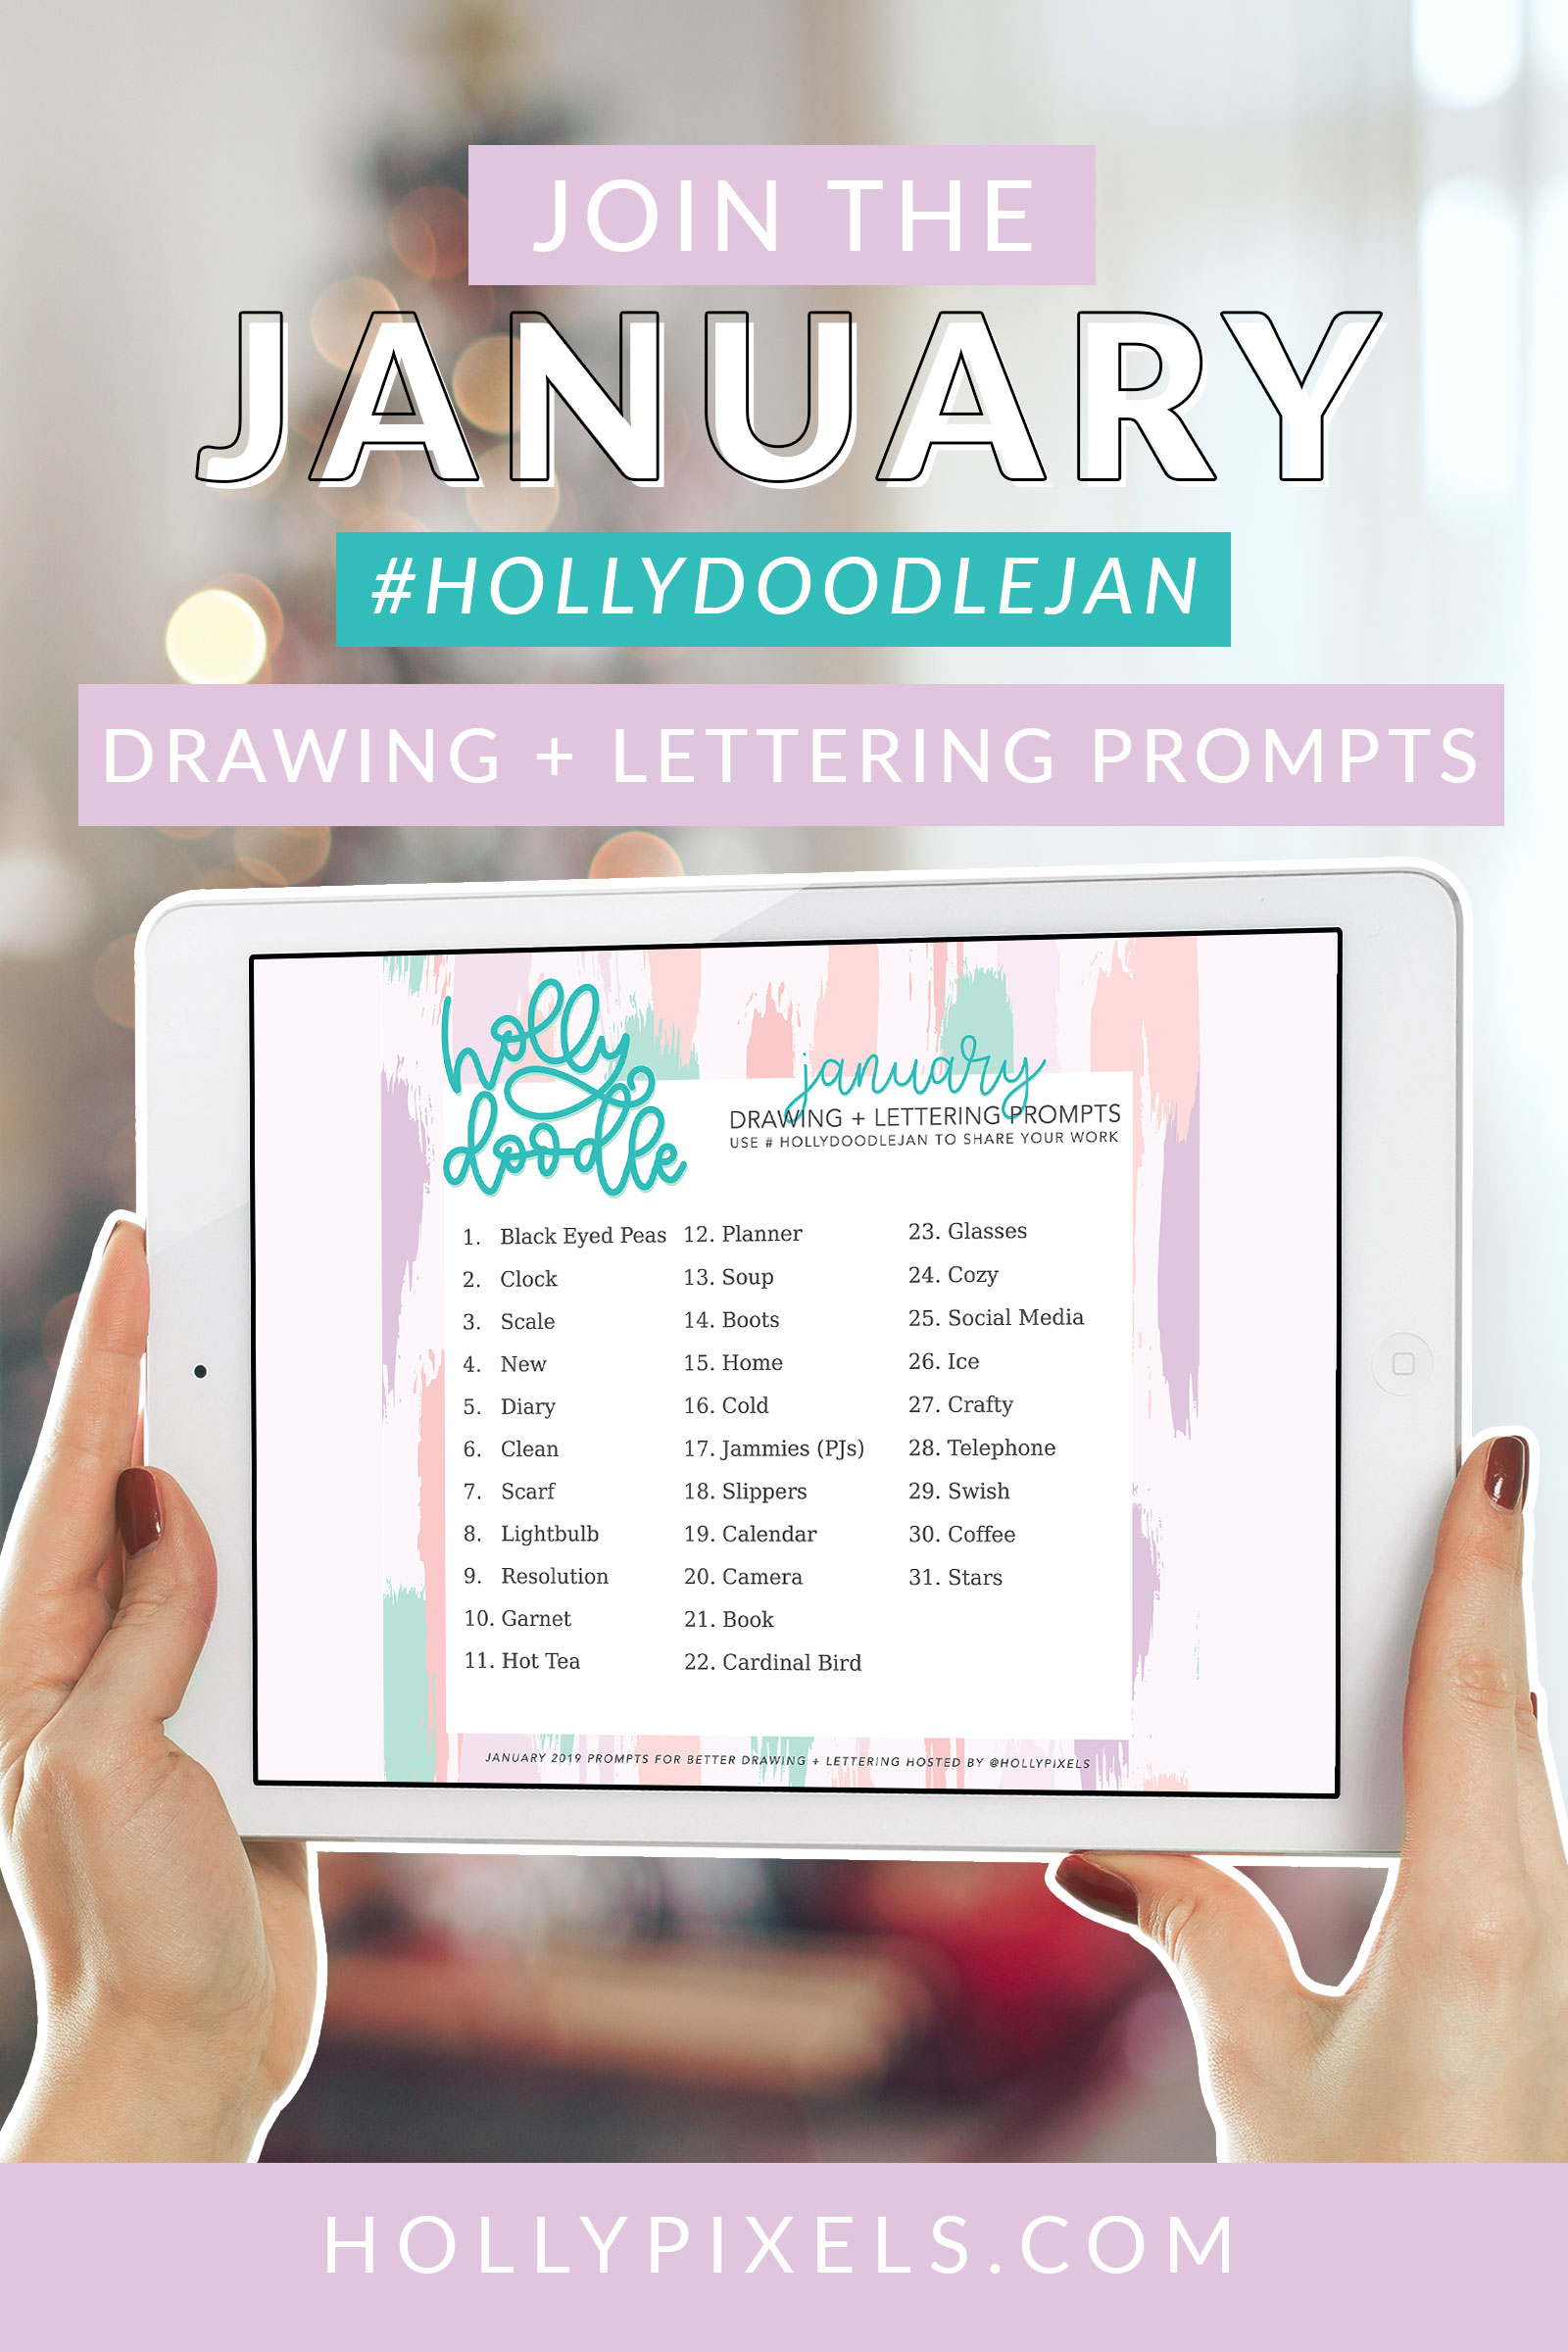 Here are the doodle prompts I came up with for January 2019. Be sure to tag me on Instagram or use the hashtag for the month: #hollydoodlejan so we can find your work and I can share some of the stand outs in my Insta Stories.